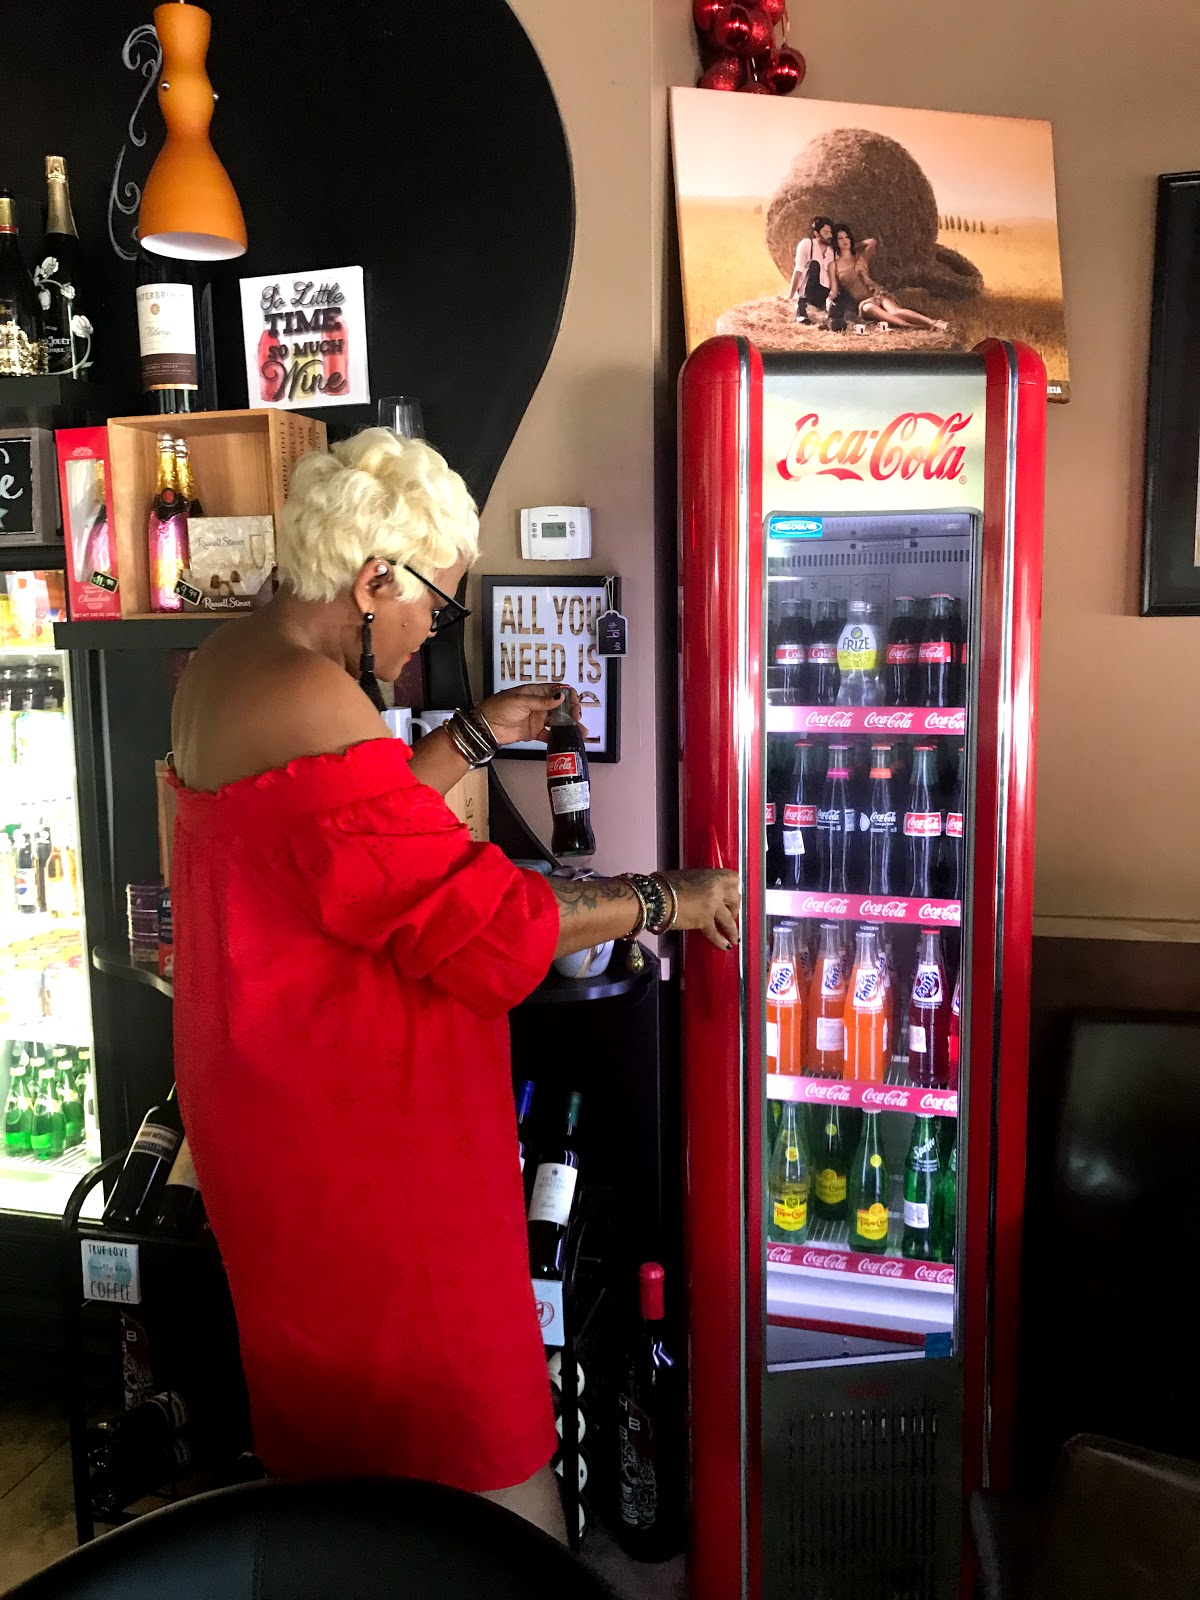 Image: Tangie Bell wearing a red dress and ordering a coke. Talking about Cooter Brown and its meanings. Seen first on Bits and Babbles Blog